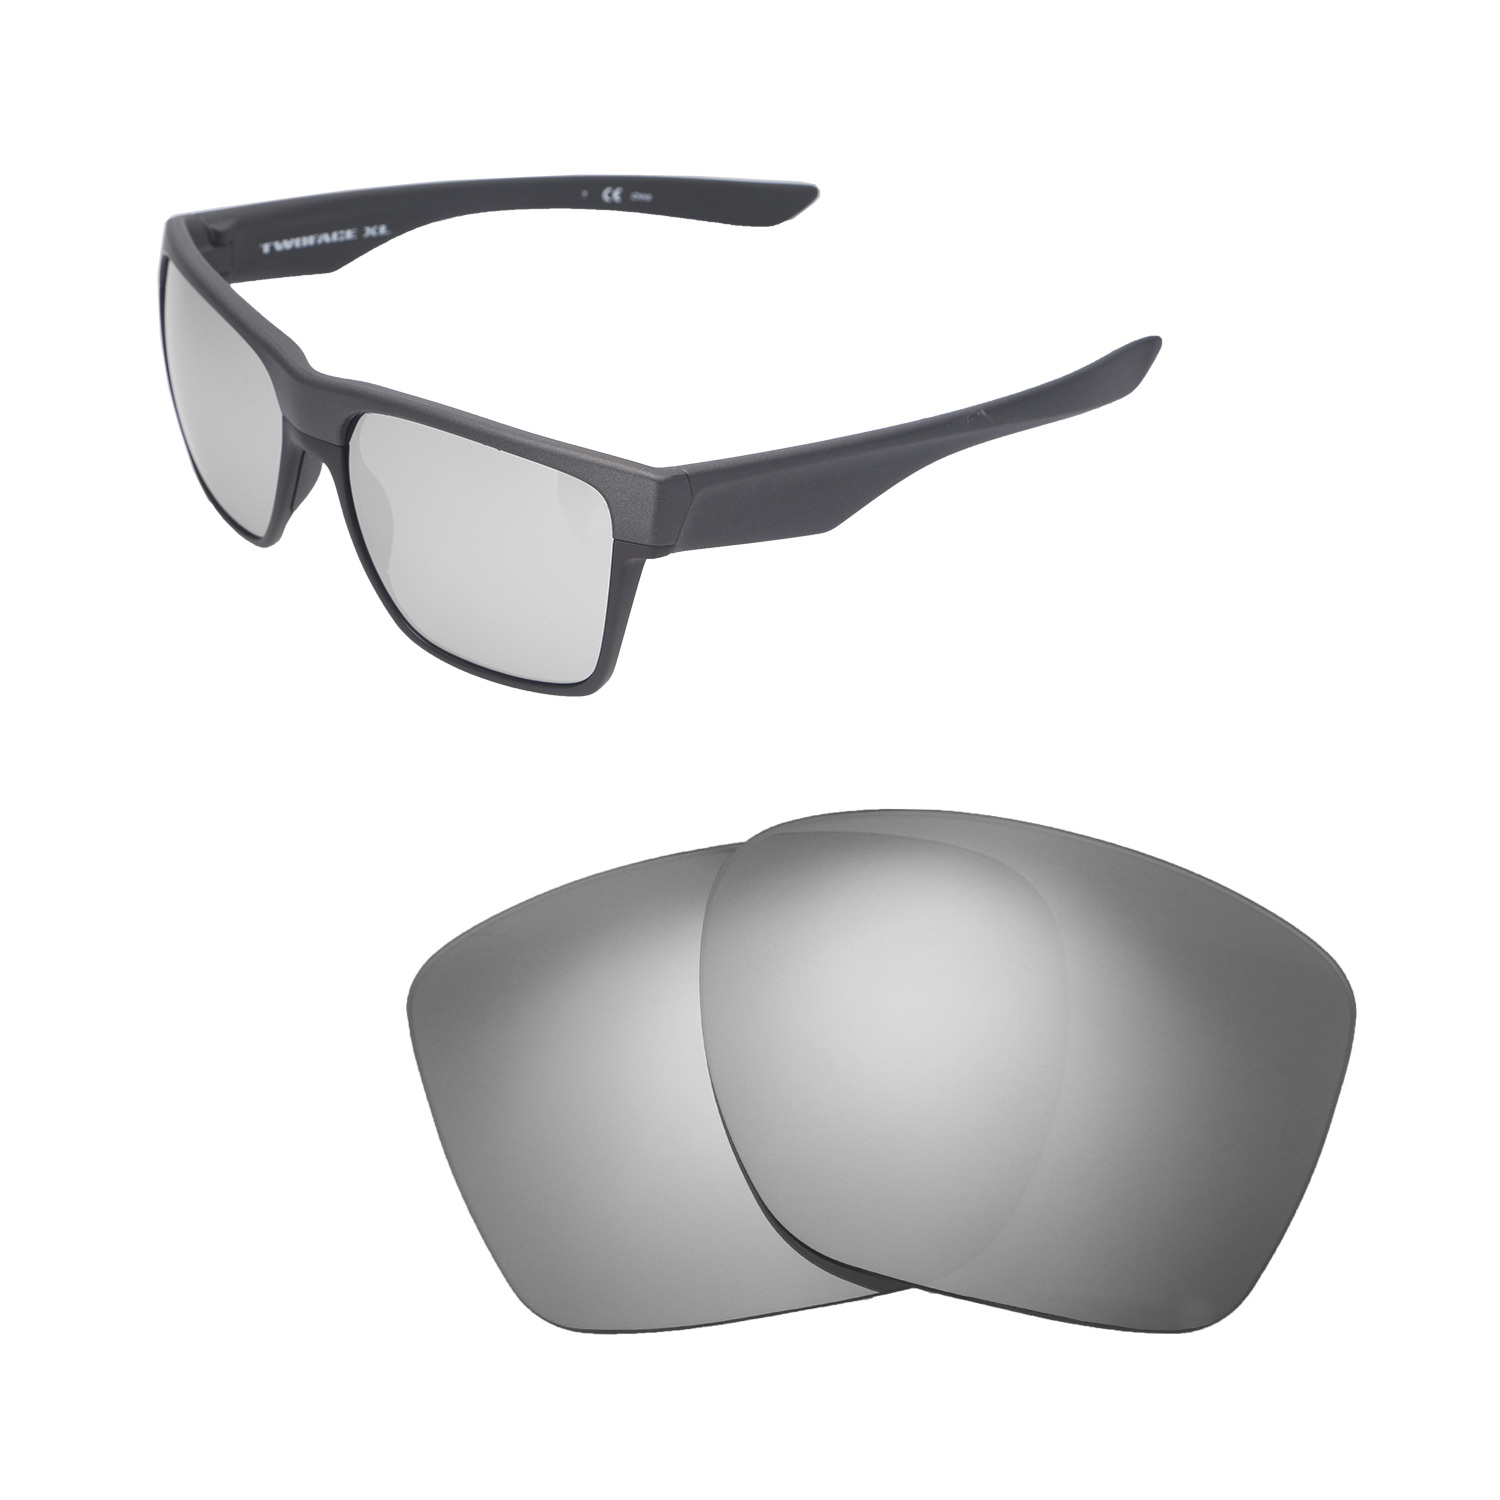 5e460c4169 Details about Walleva Titanium Polarized Replacement Lenses For Oakley  TwoFace XL Sunglasses